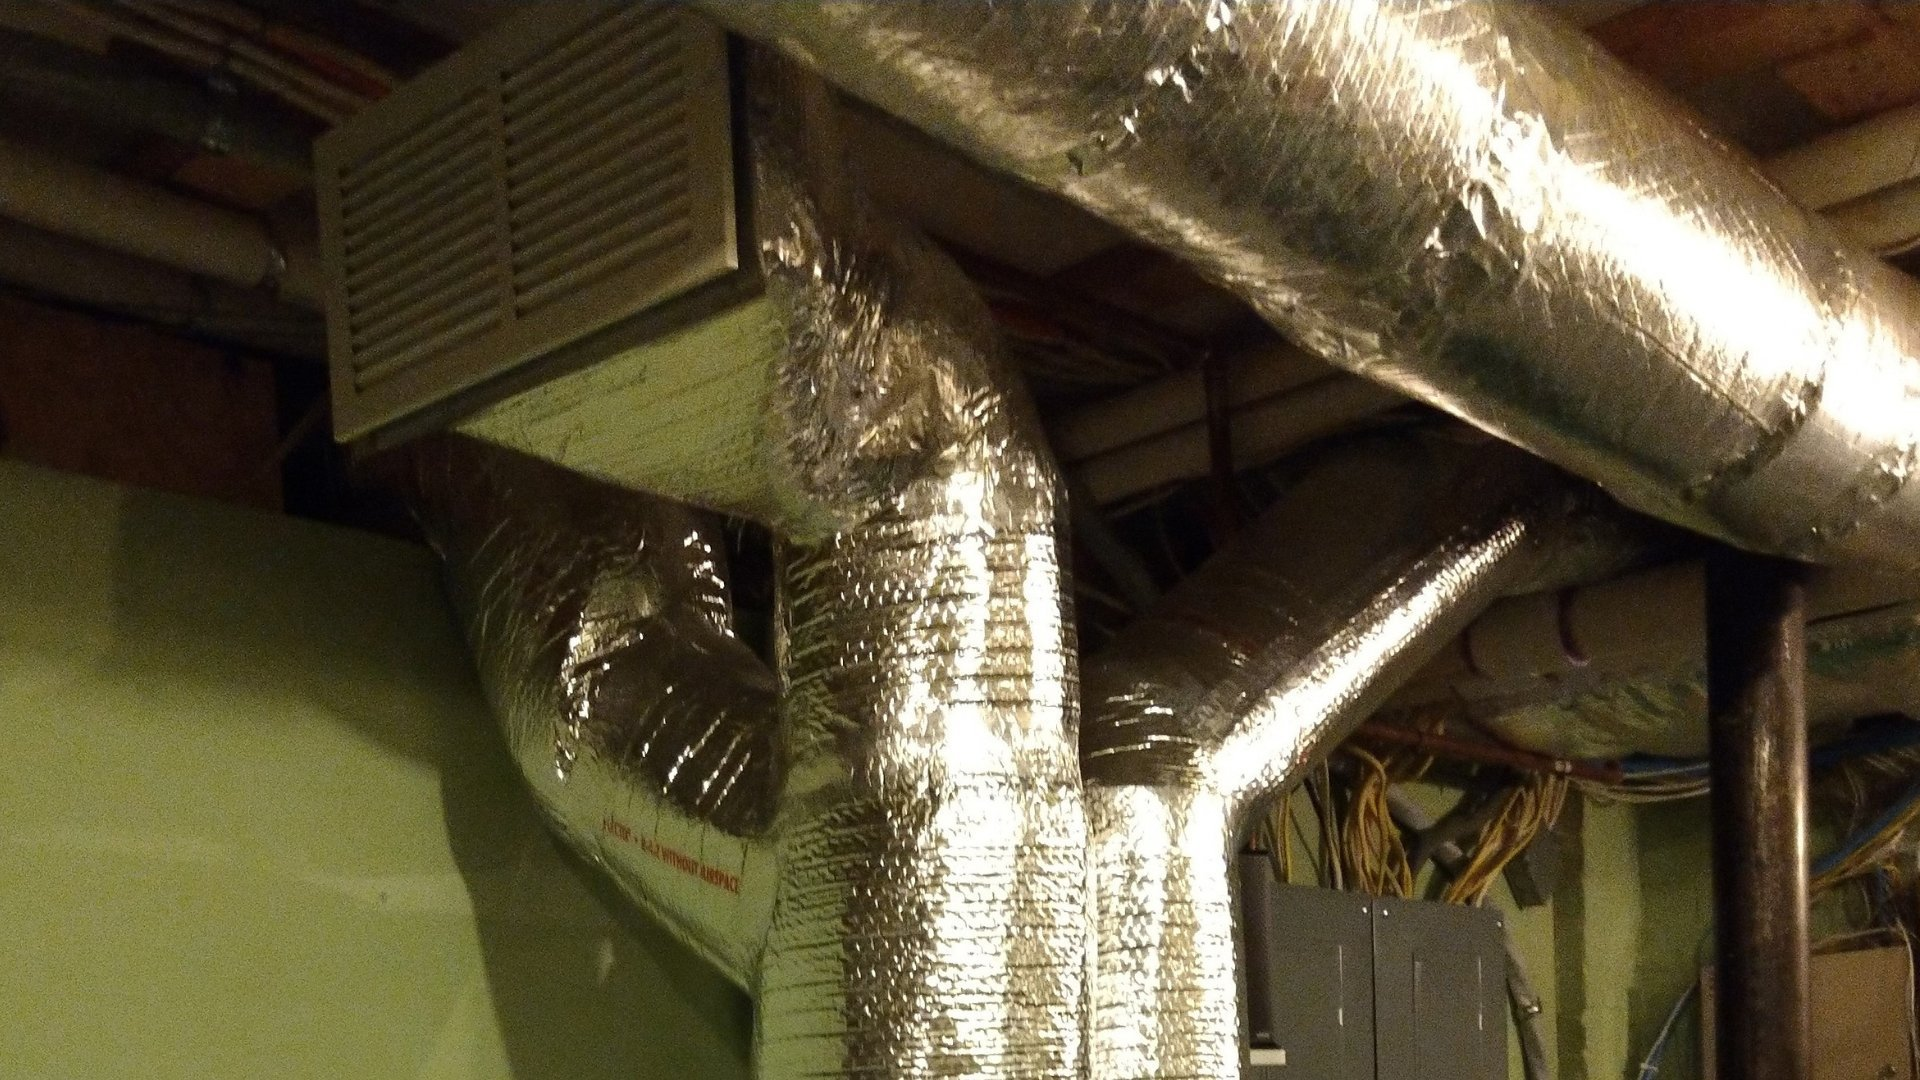 Duct Sealing From Furnace in Basement - Page Gallery